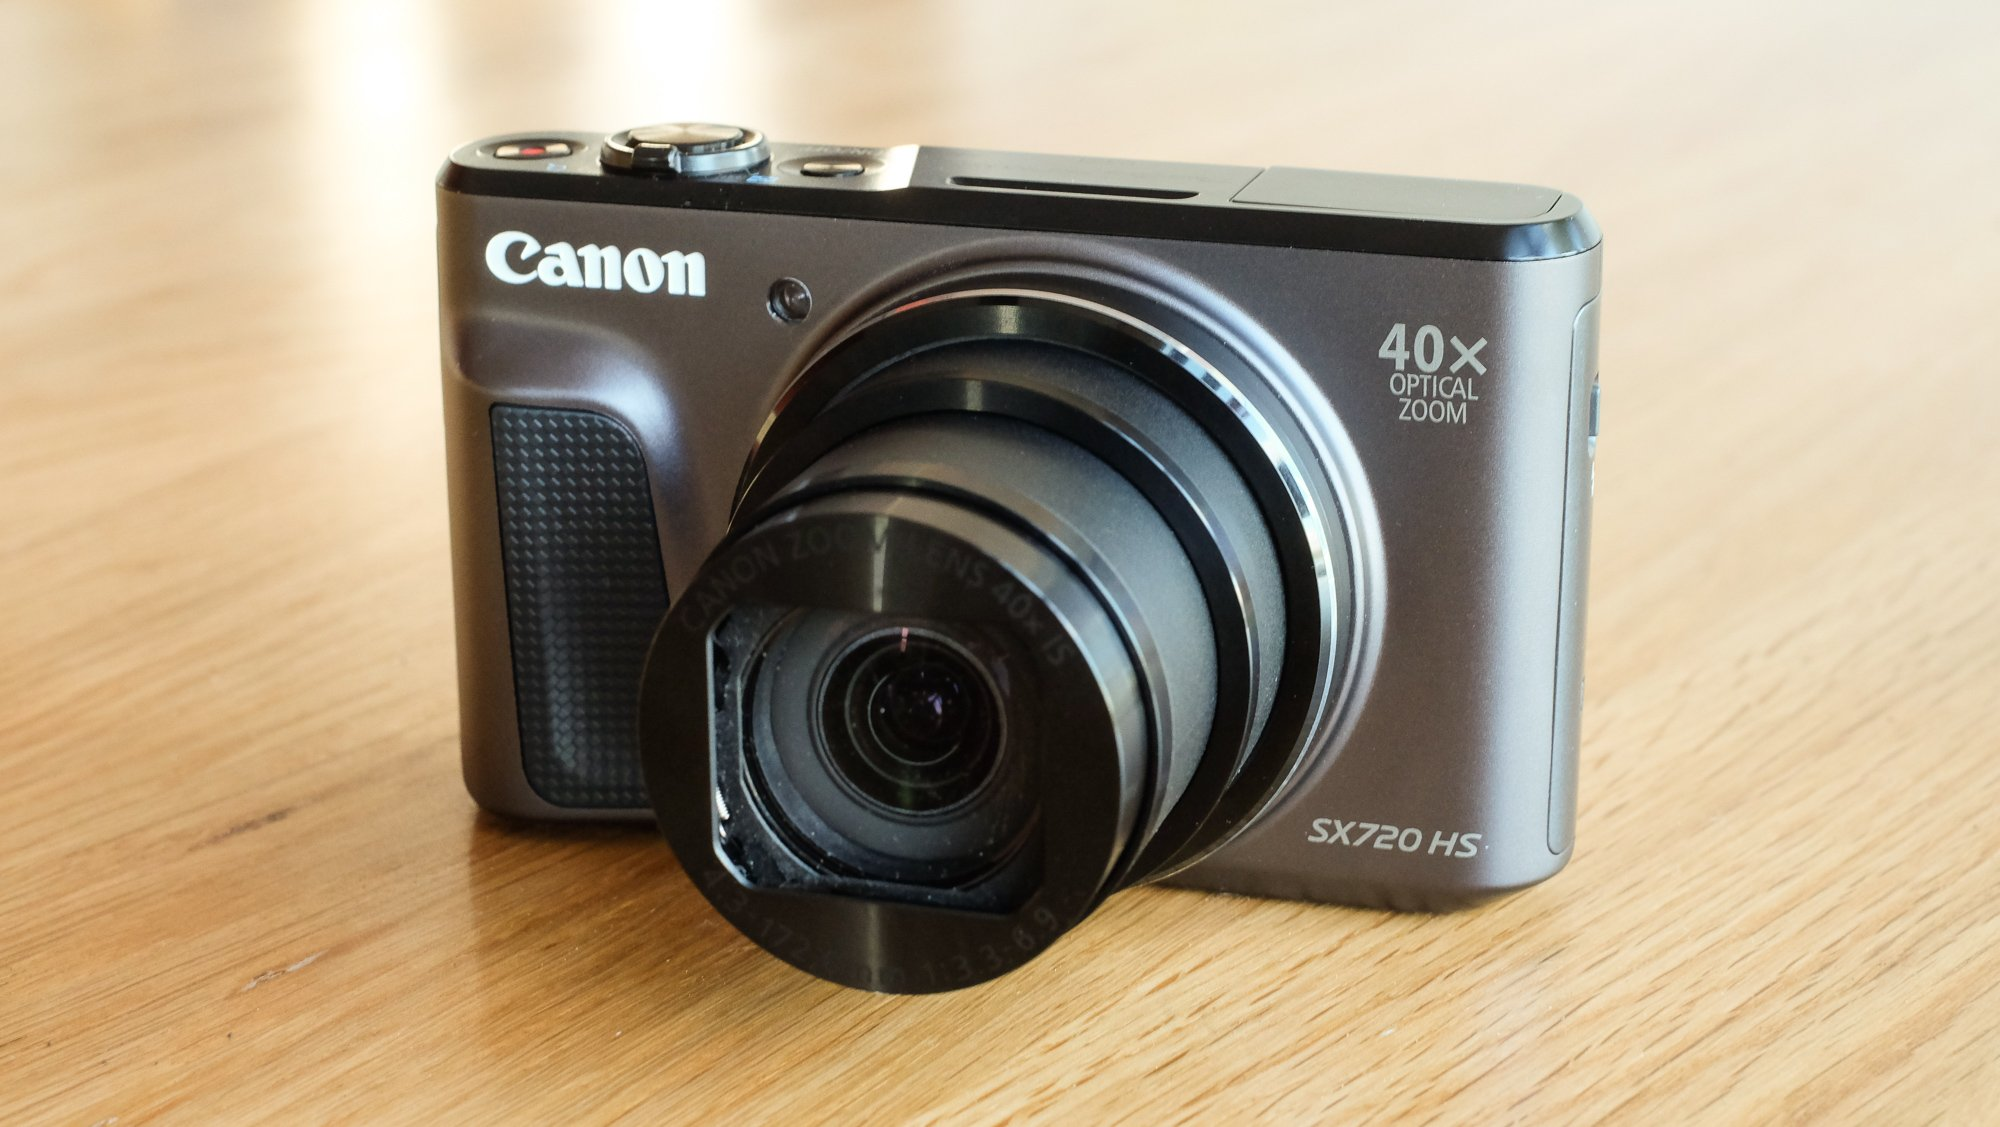 Canon SX720 HS review - biggest ever 40x zoom in a compact ...